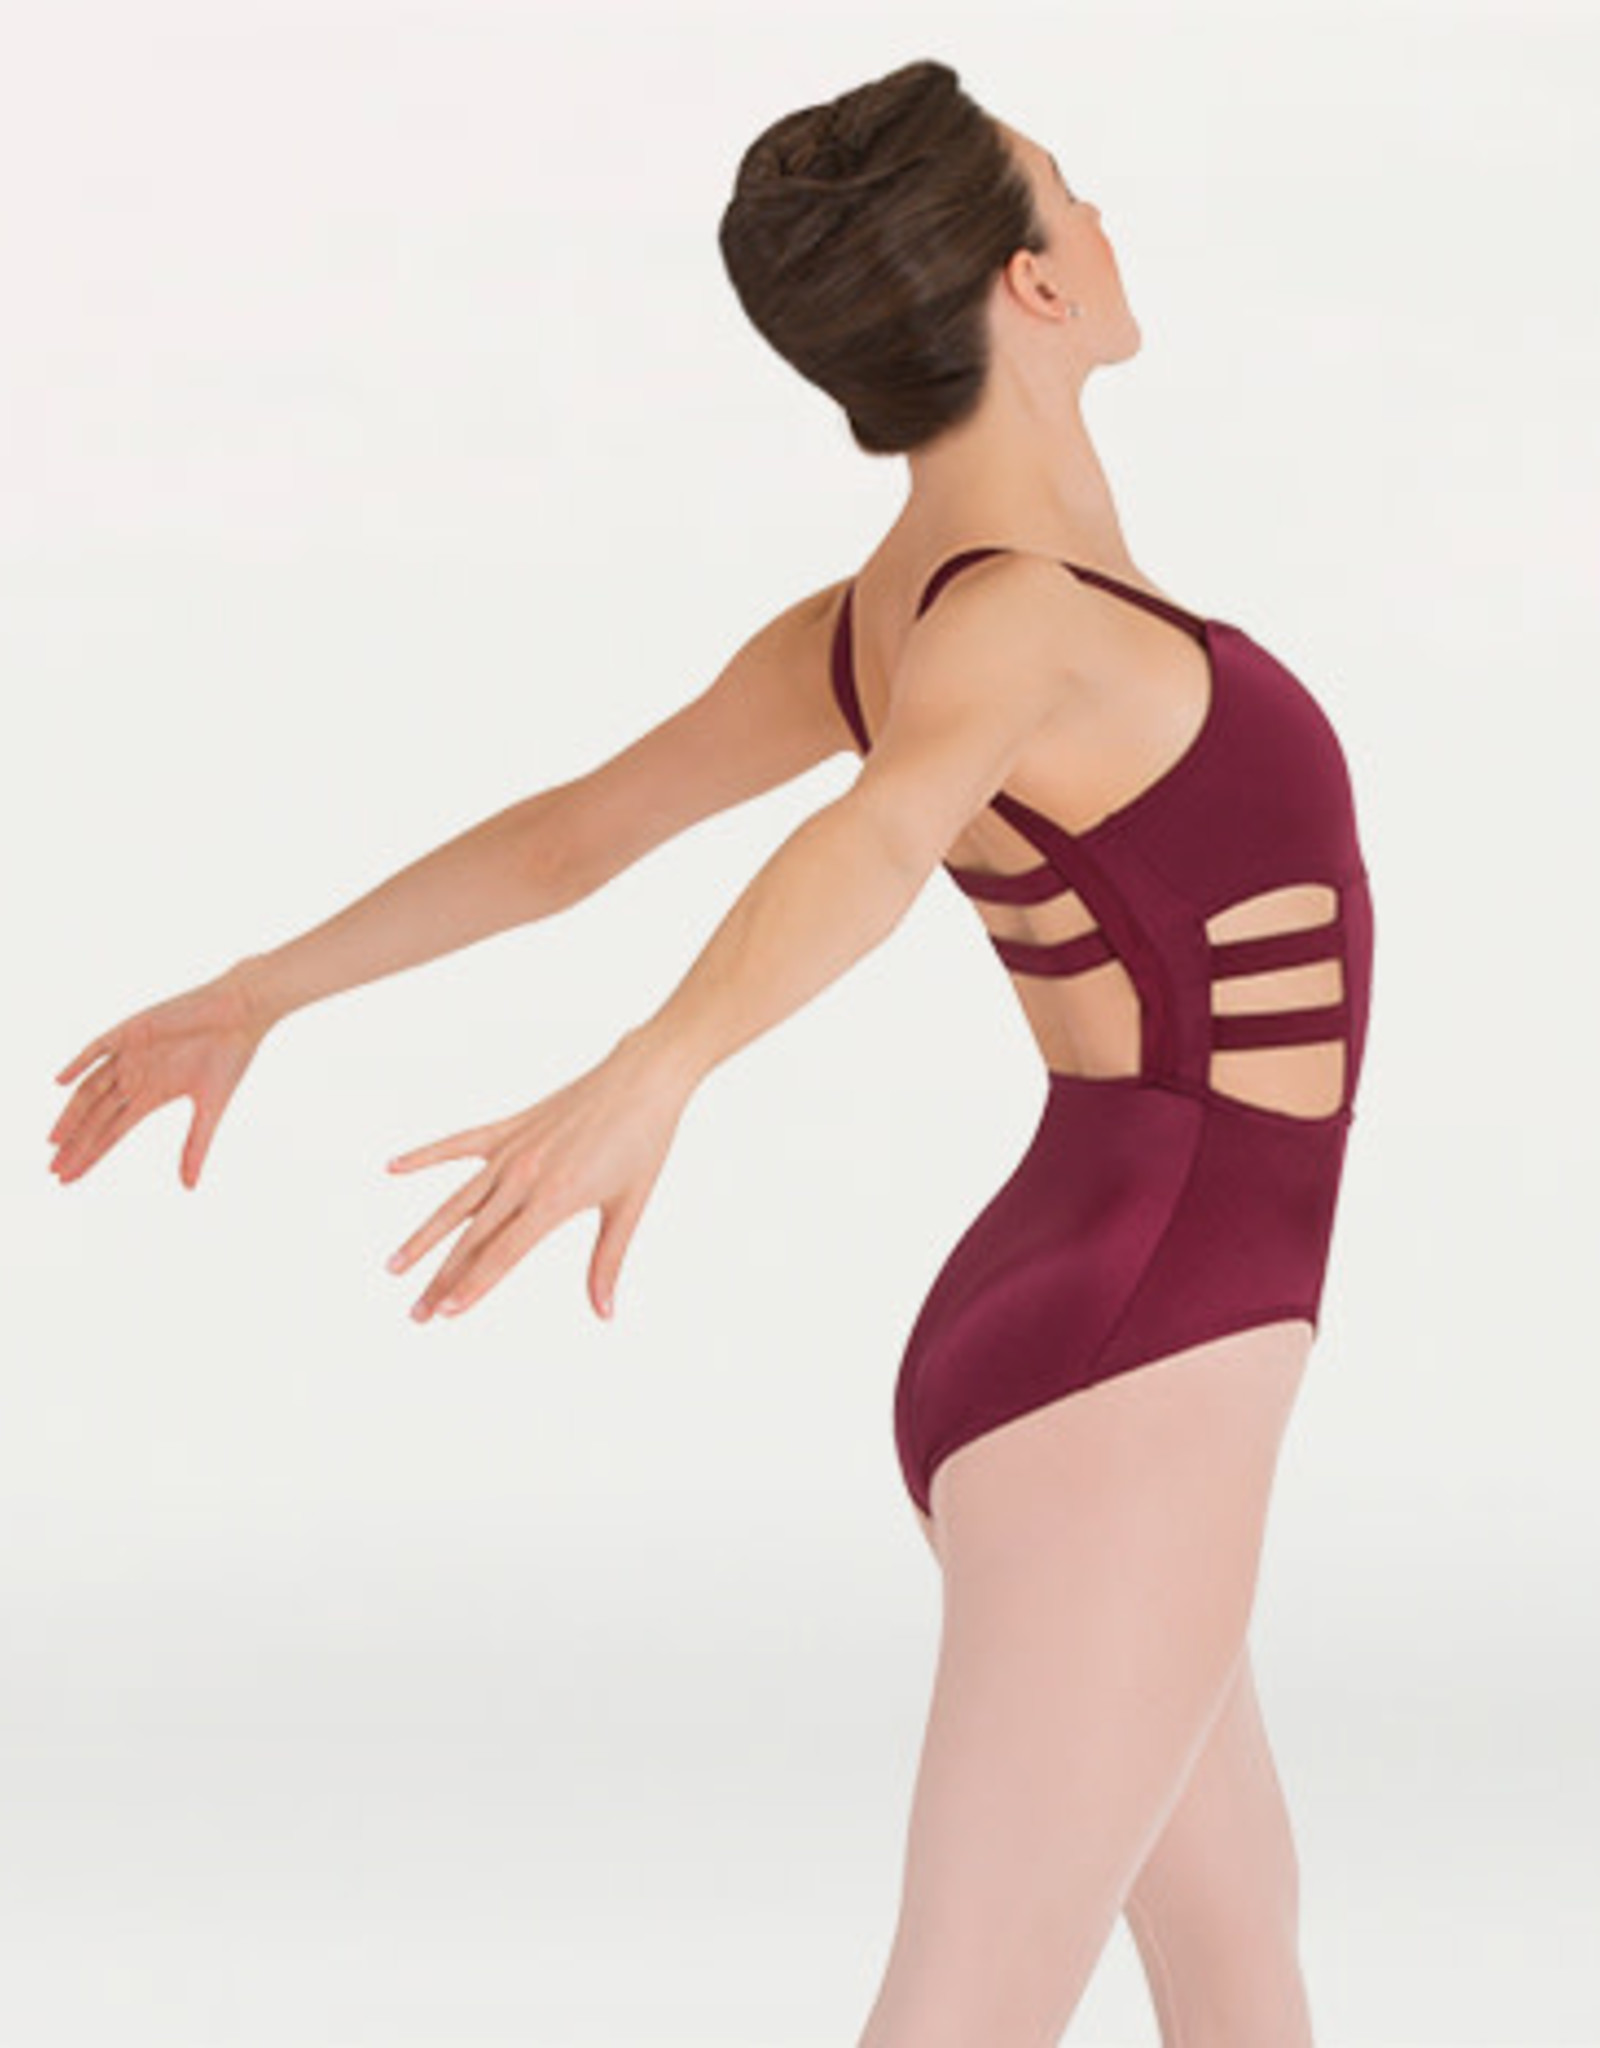 Body Wrappers Body Wrappers Strappy Camisole Leotard P1132